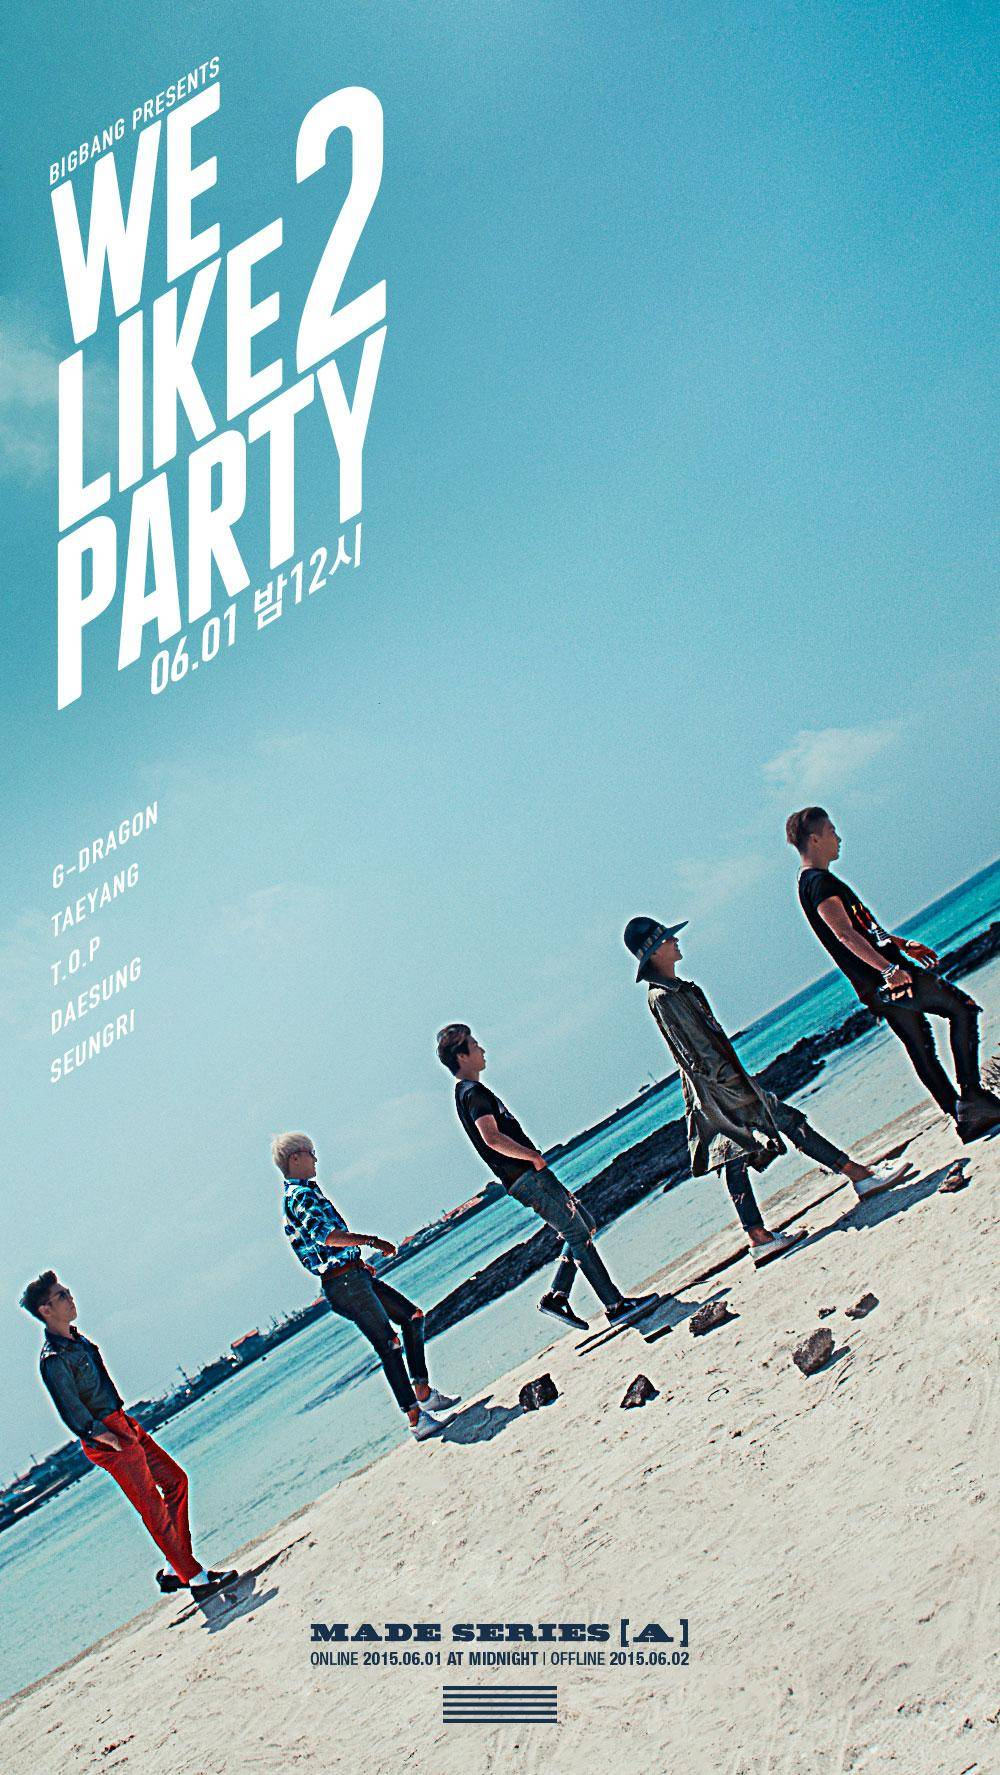 Big Bang say 'We Like 2 Party' in their susunod poster for segundo monthly comeback project!